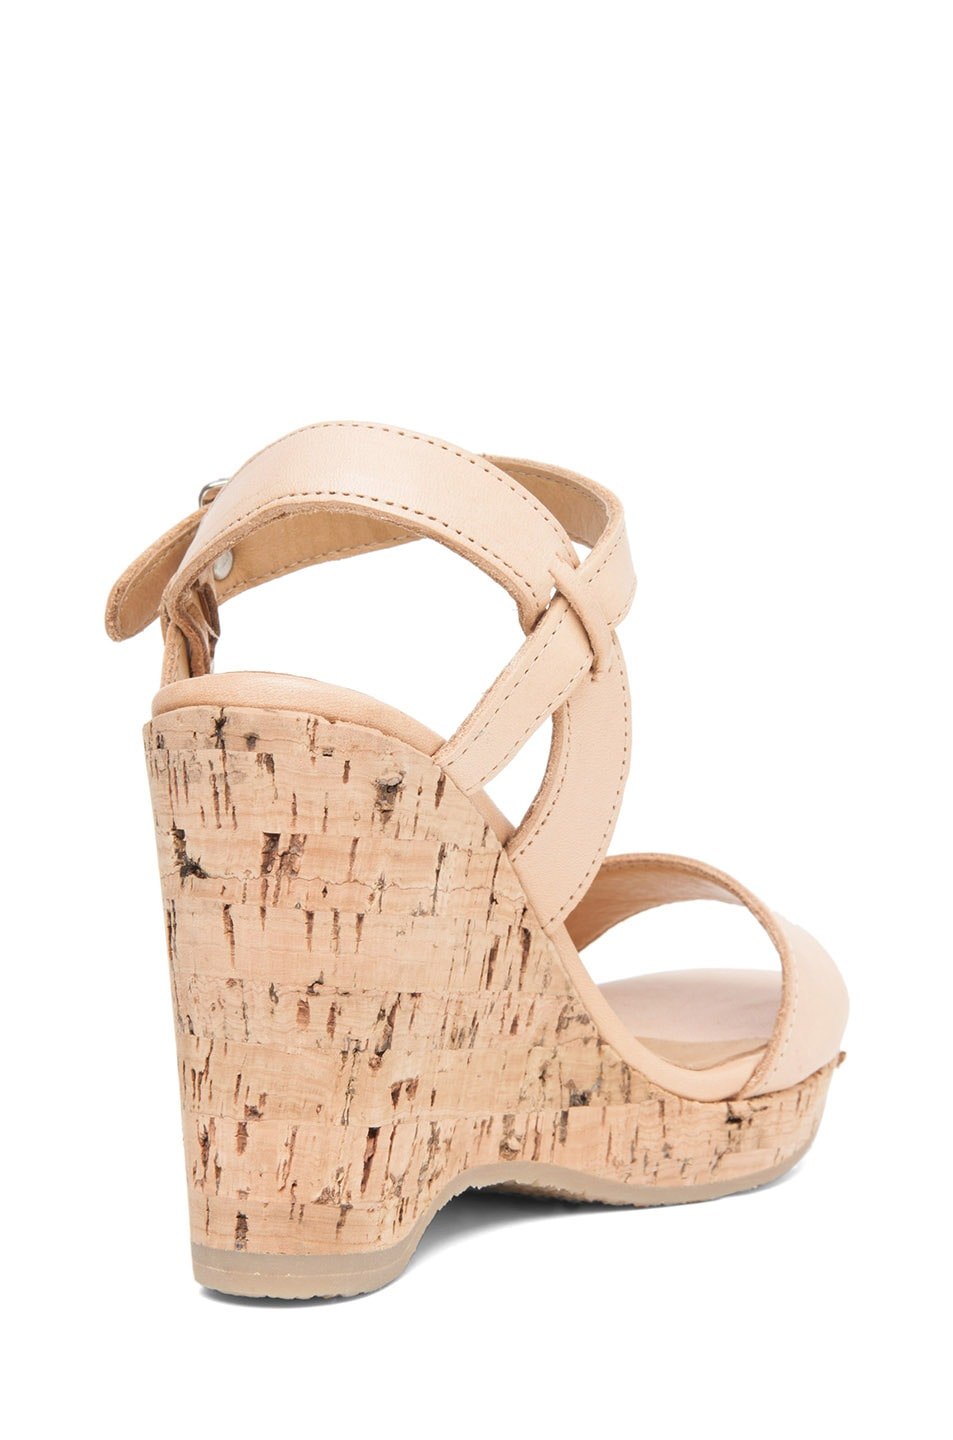 Image 3 of A.P.C. Lisse Calfskin Leather Sandals in Beige Rose